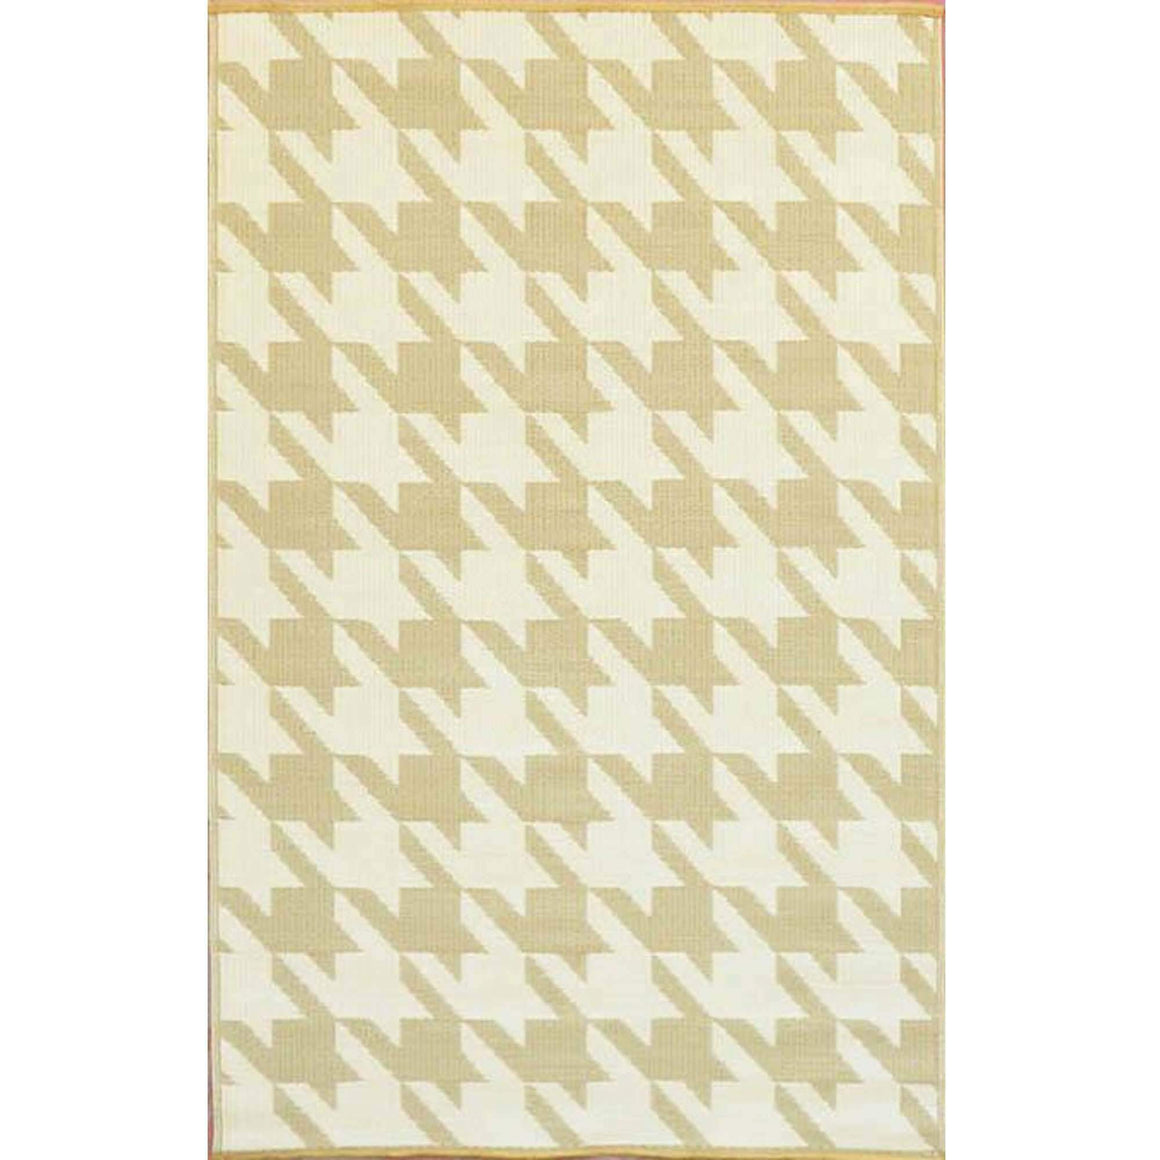 Hound's Tooth Eco Friendly Plastic Outdoor Area Rugs